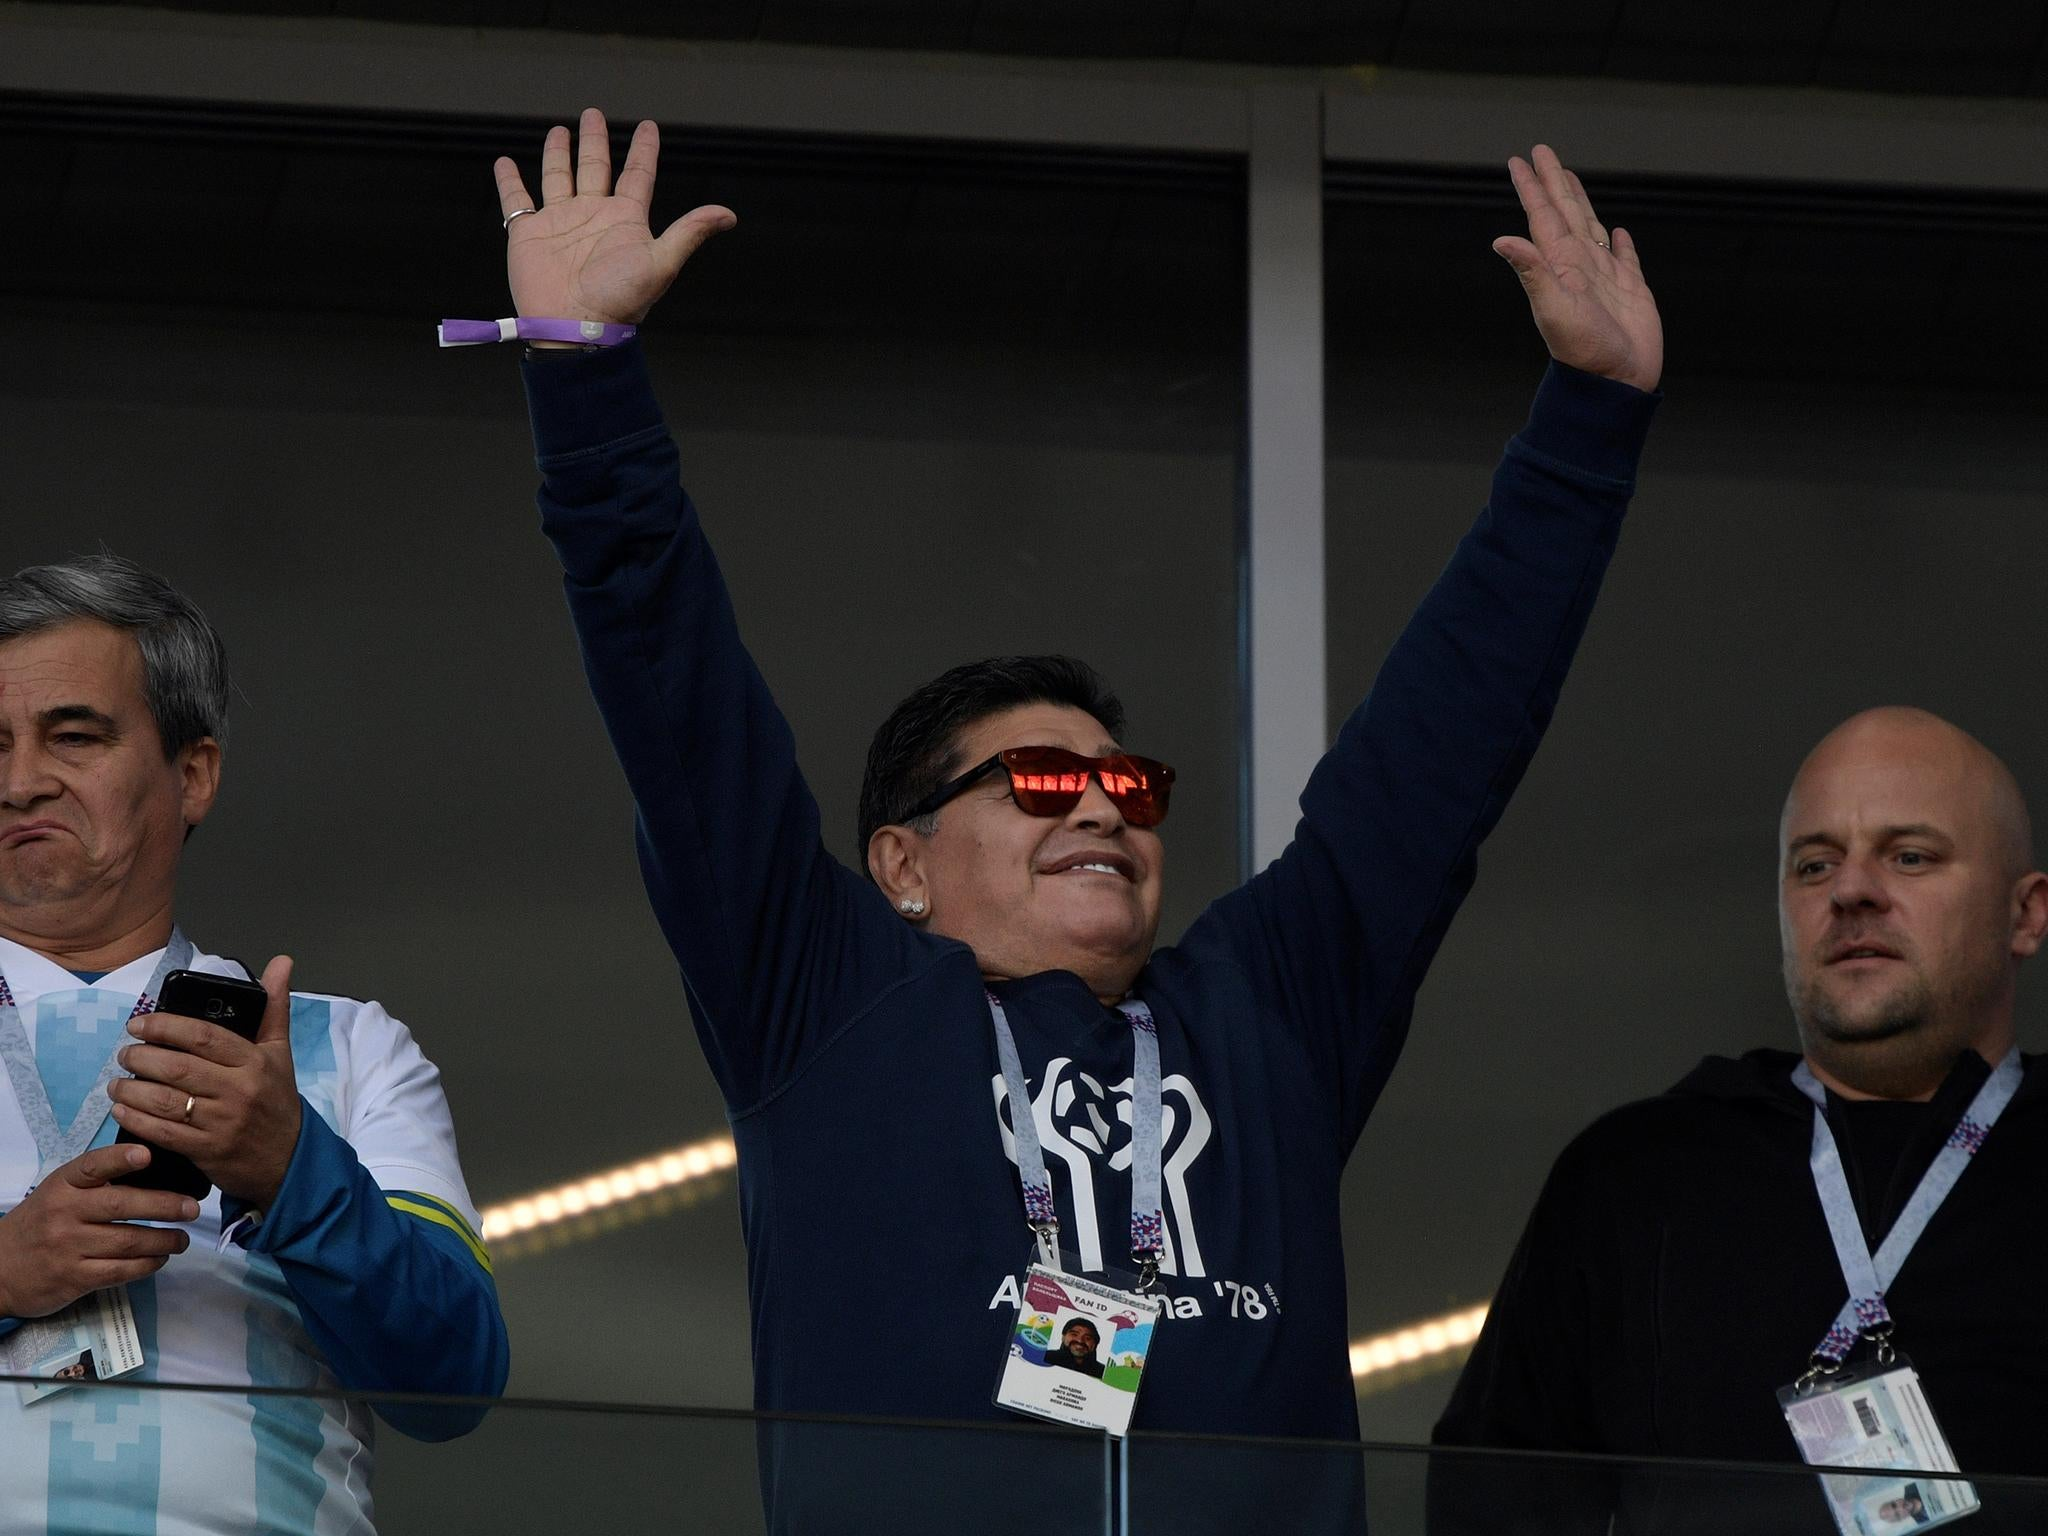 World Cup 2018 Diego Maradona Accused Of Making Clearly Racist Gesture At Young South Korean Fans The Independent The Independent